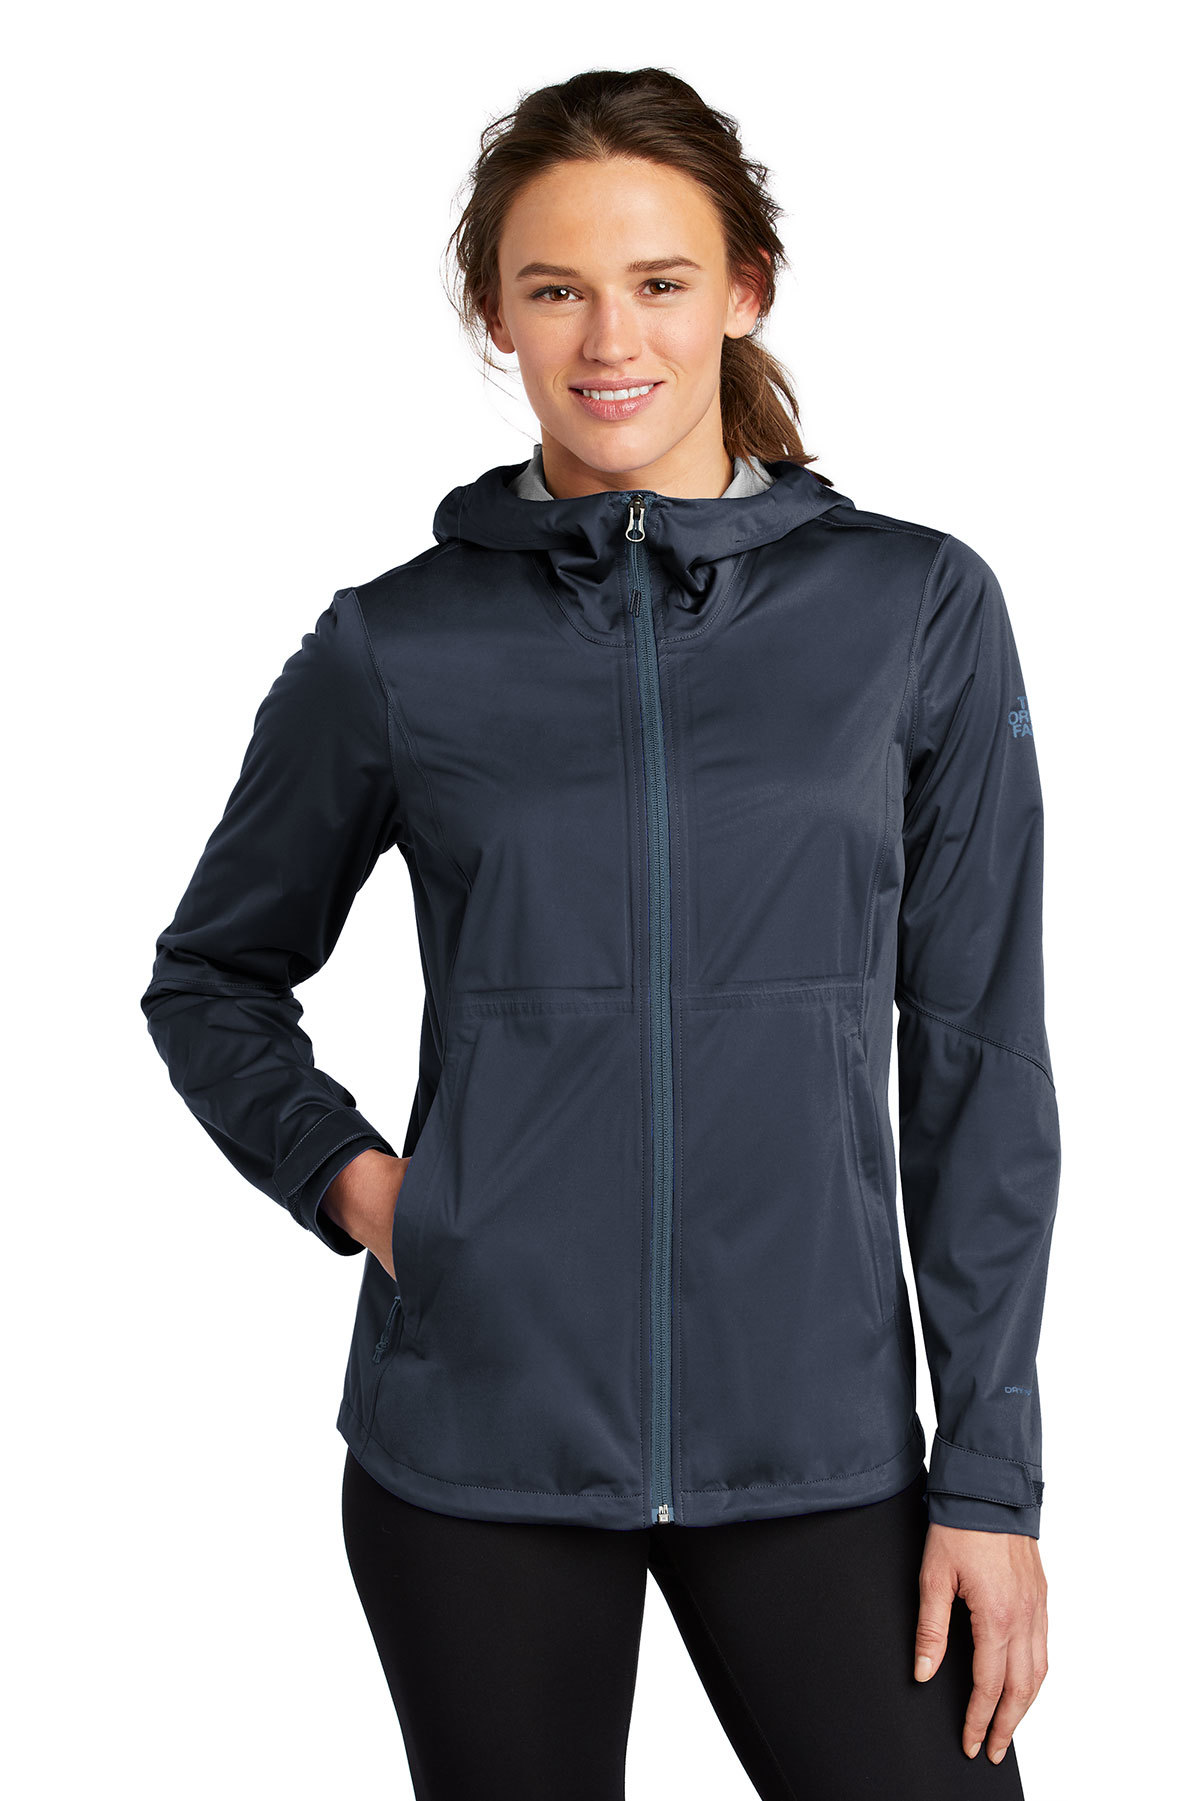 The North Face NF0A47FH - Ladies All-Weather DryVent Stretch Jacket